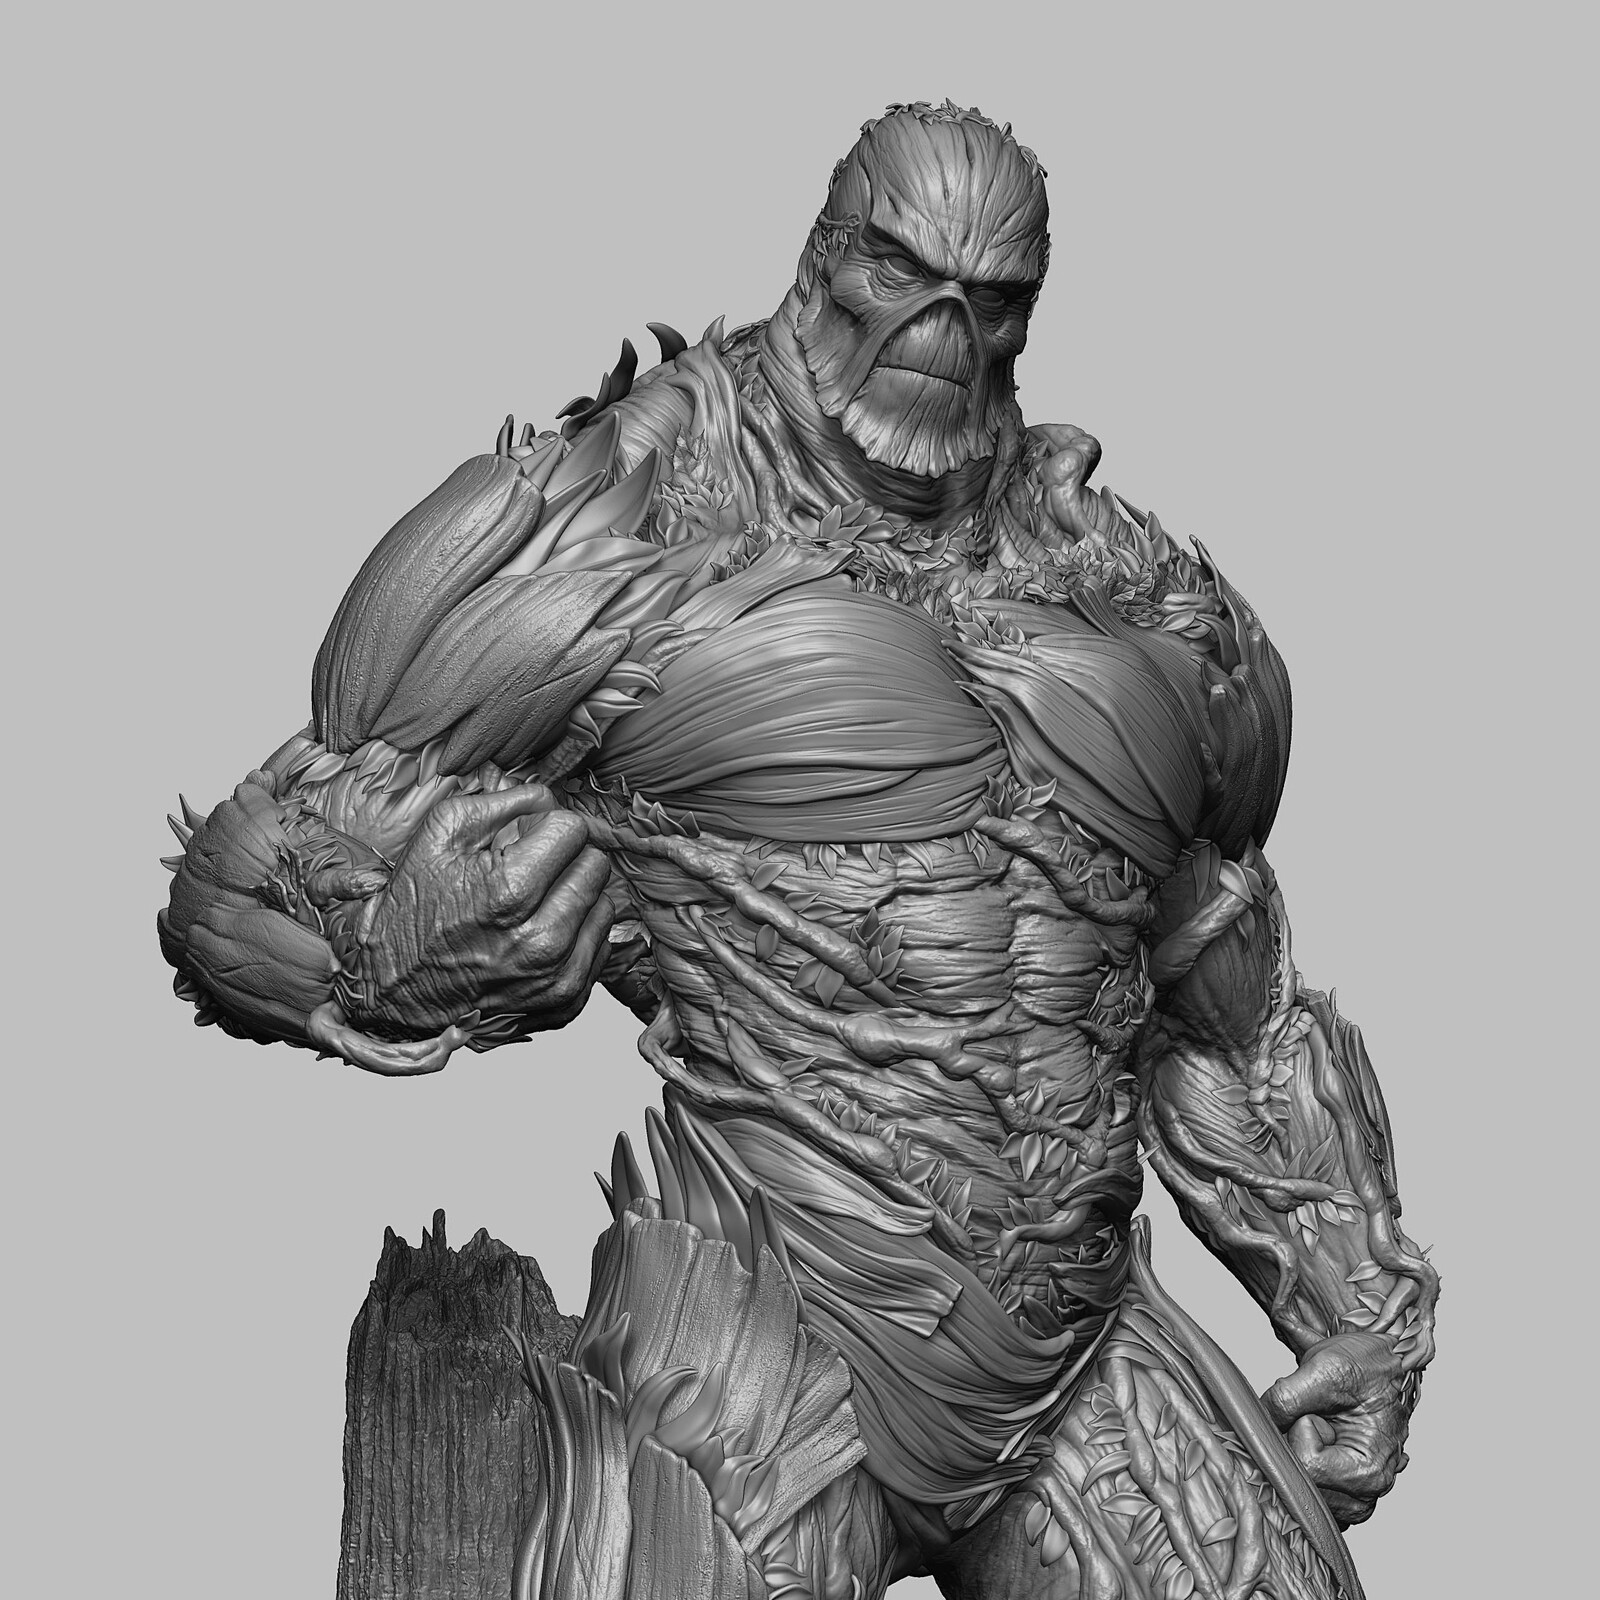 Prime 1 Studio - Swamp Thing 1:3 scale